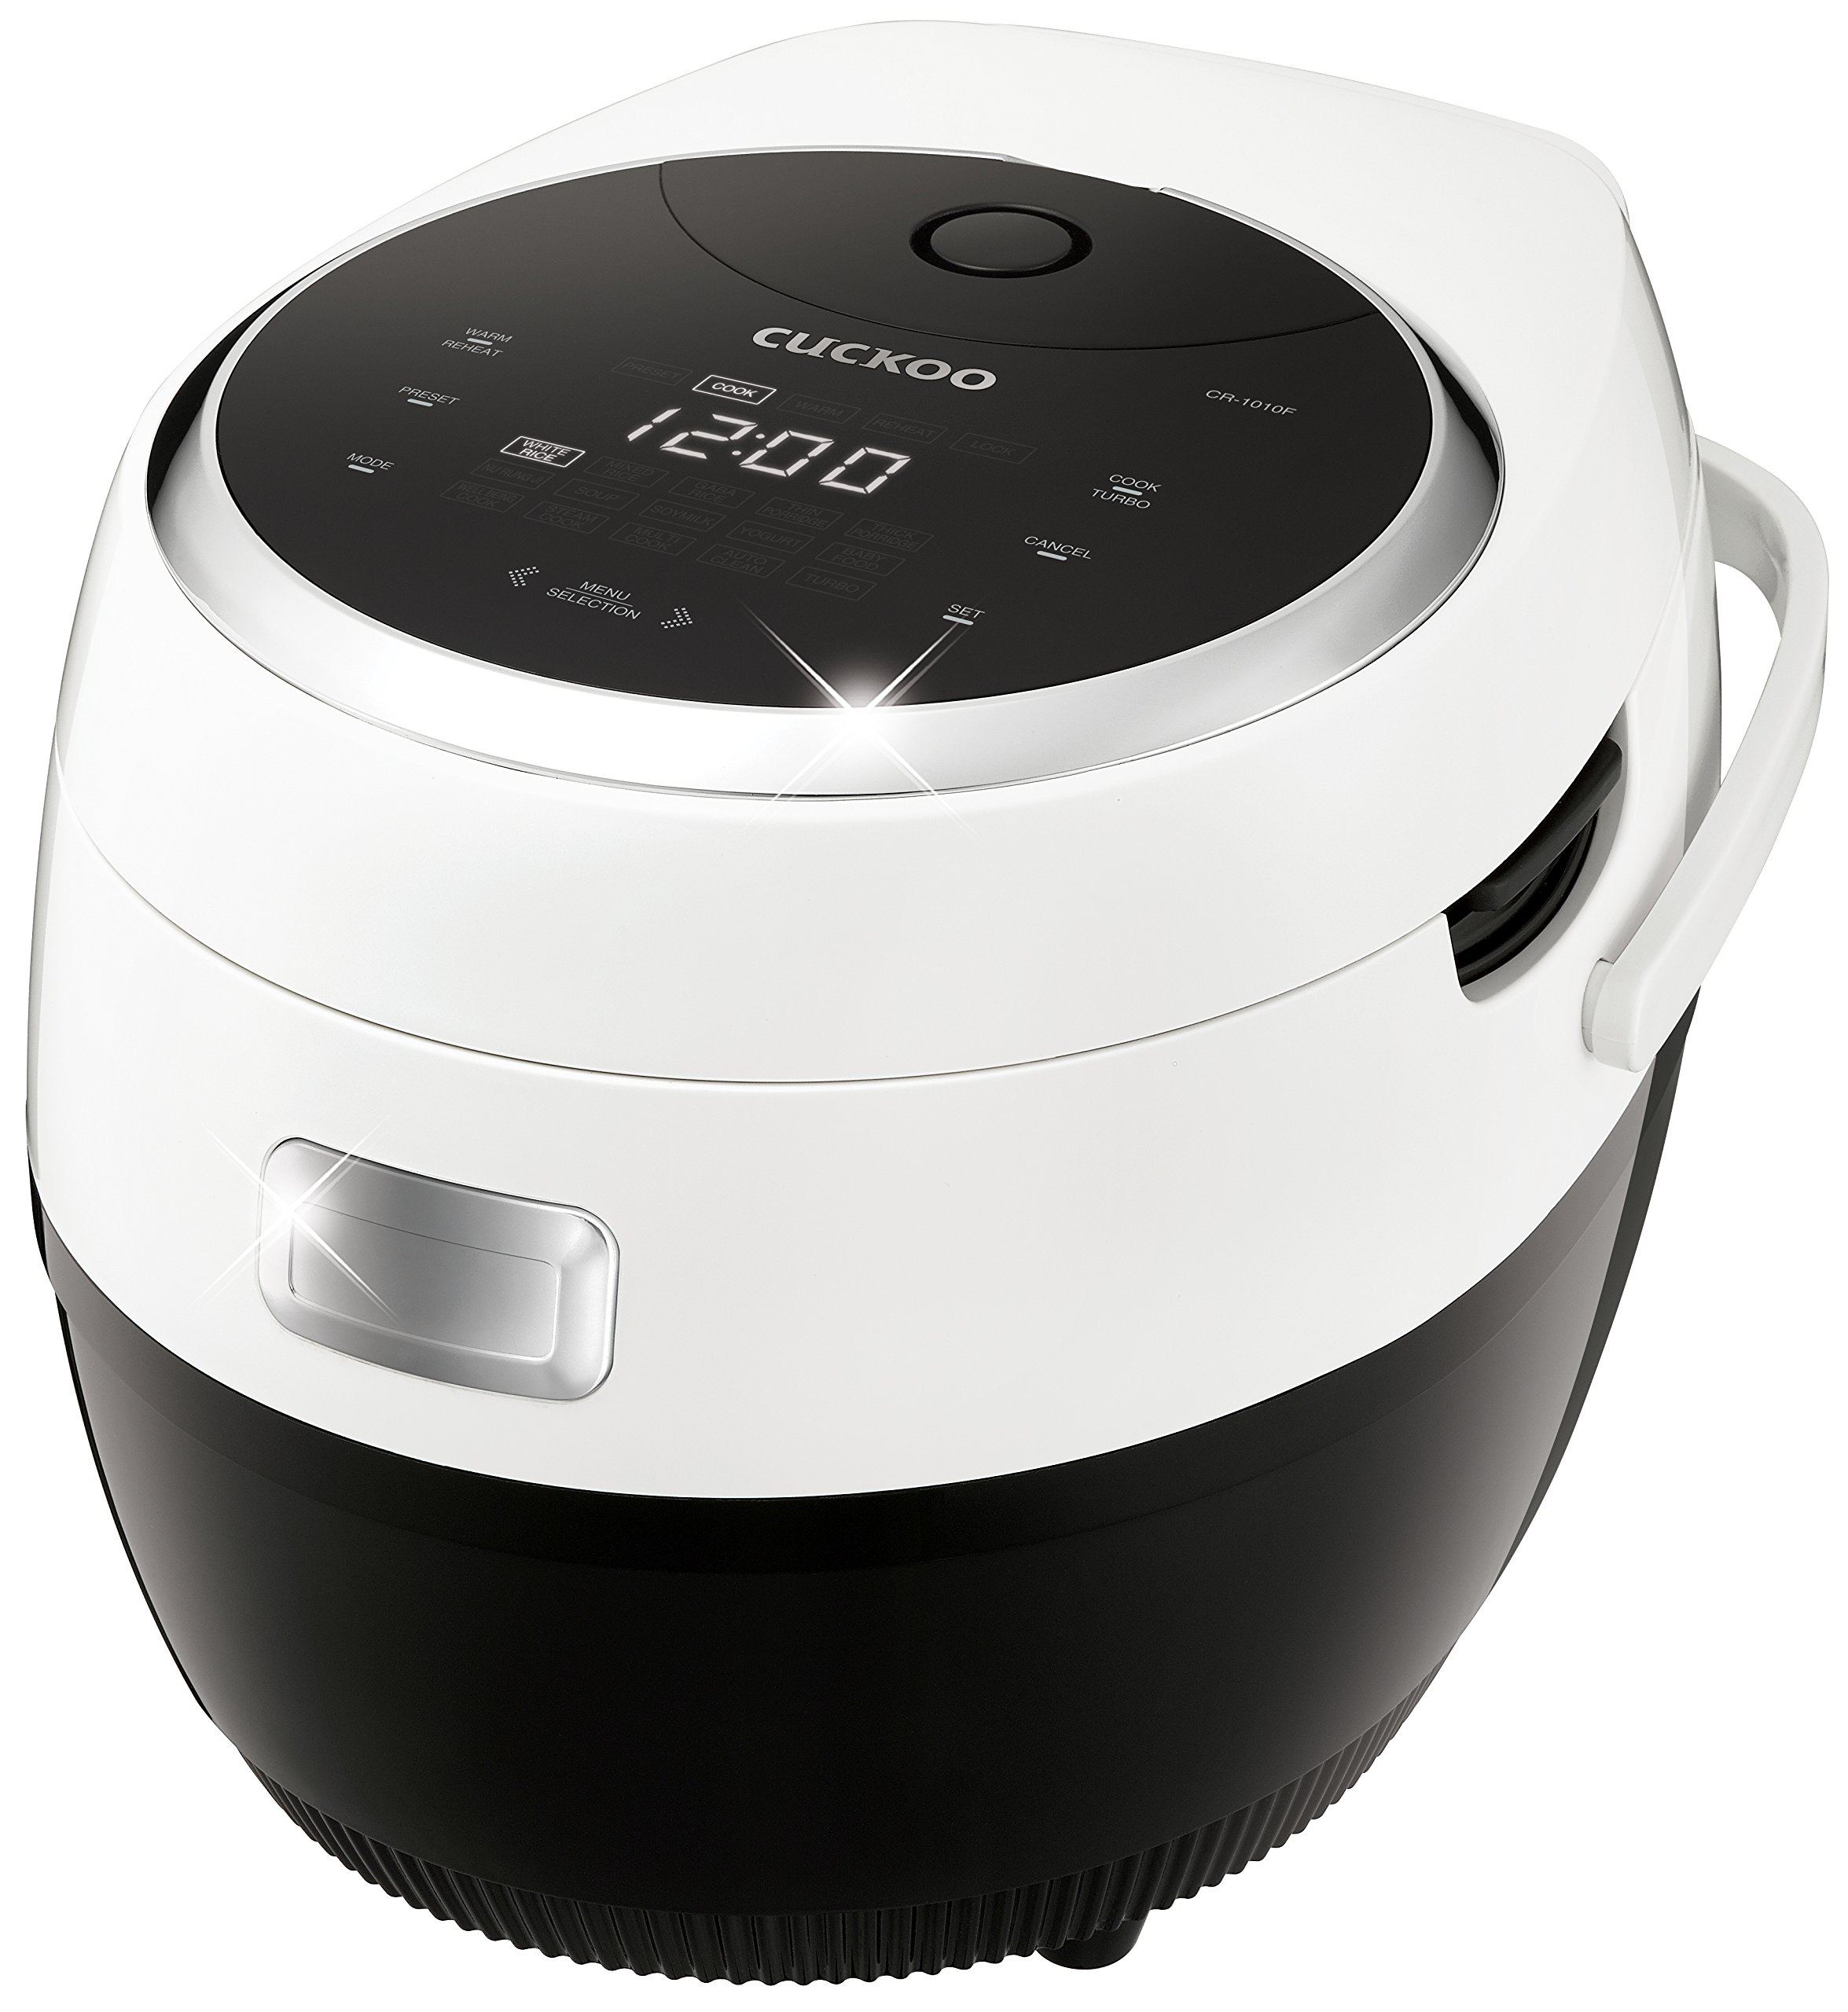 Cuckoo Electric Heating Rice Cooker CR-1010F, Mid Size, White and Black by Cuckoo